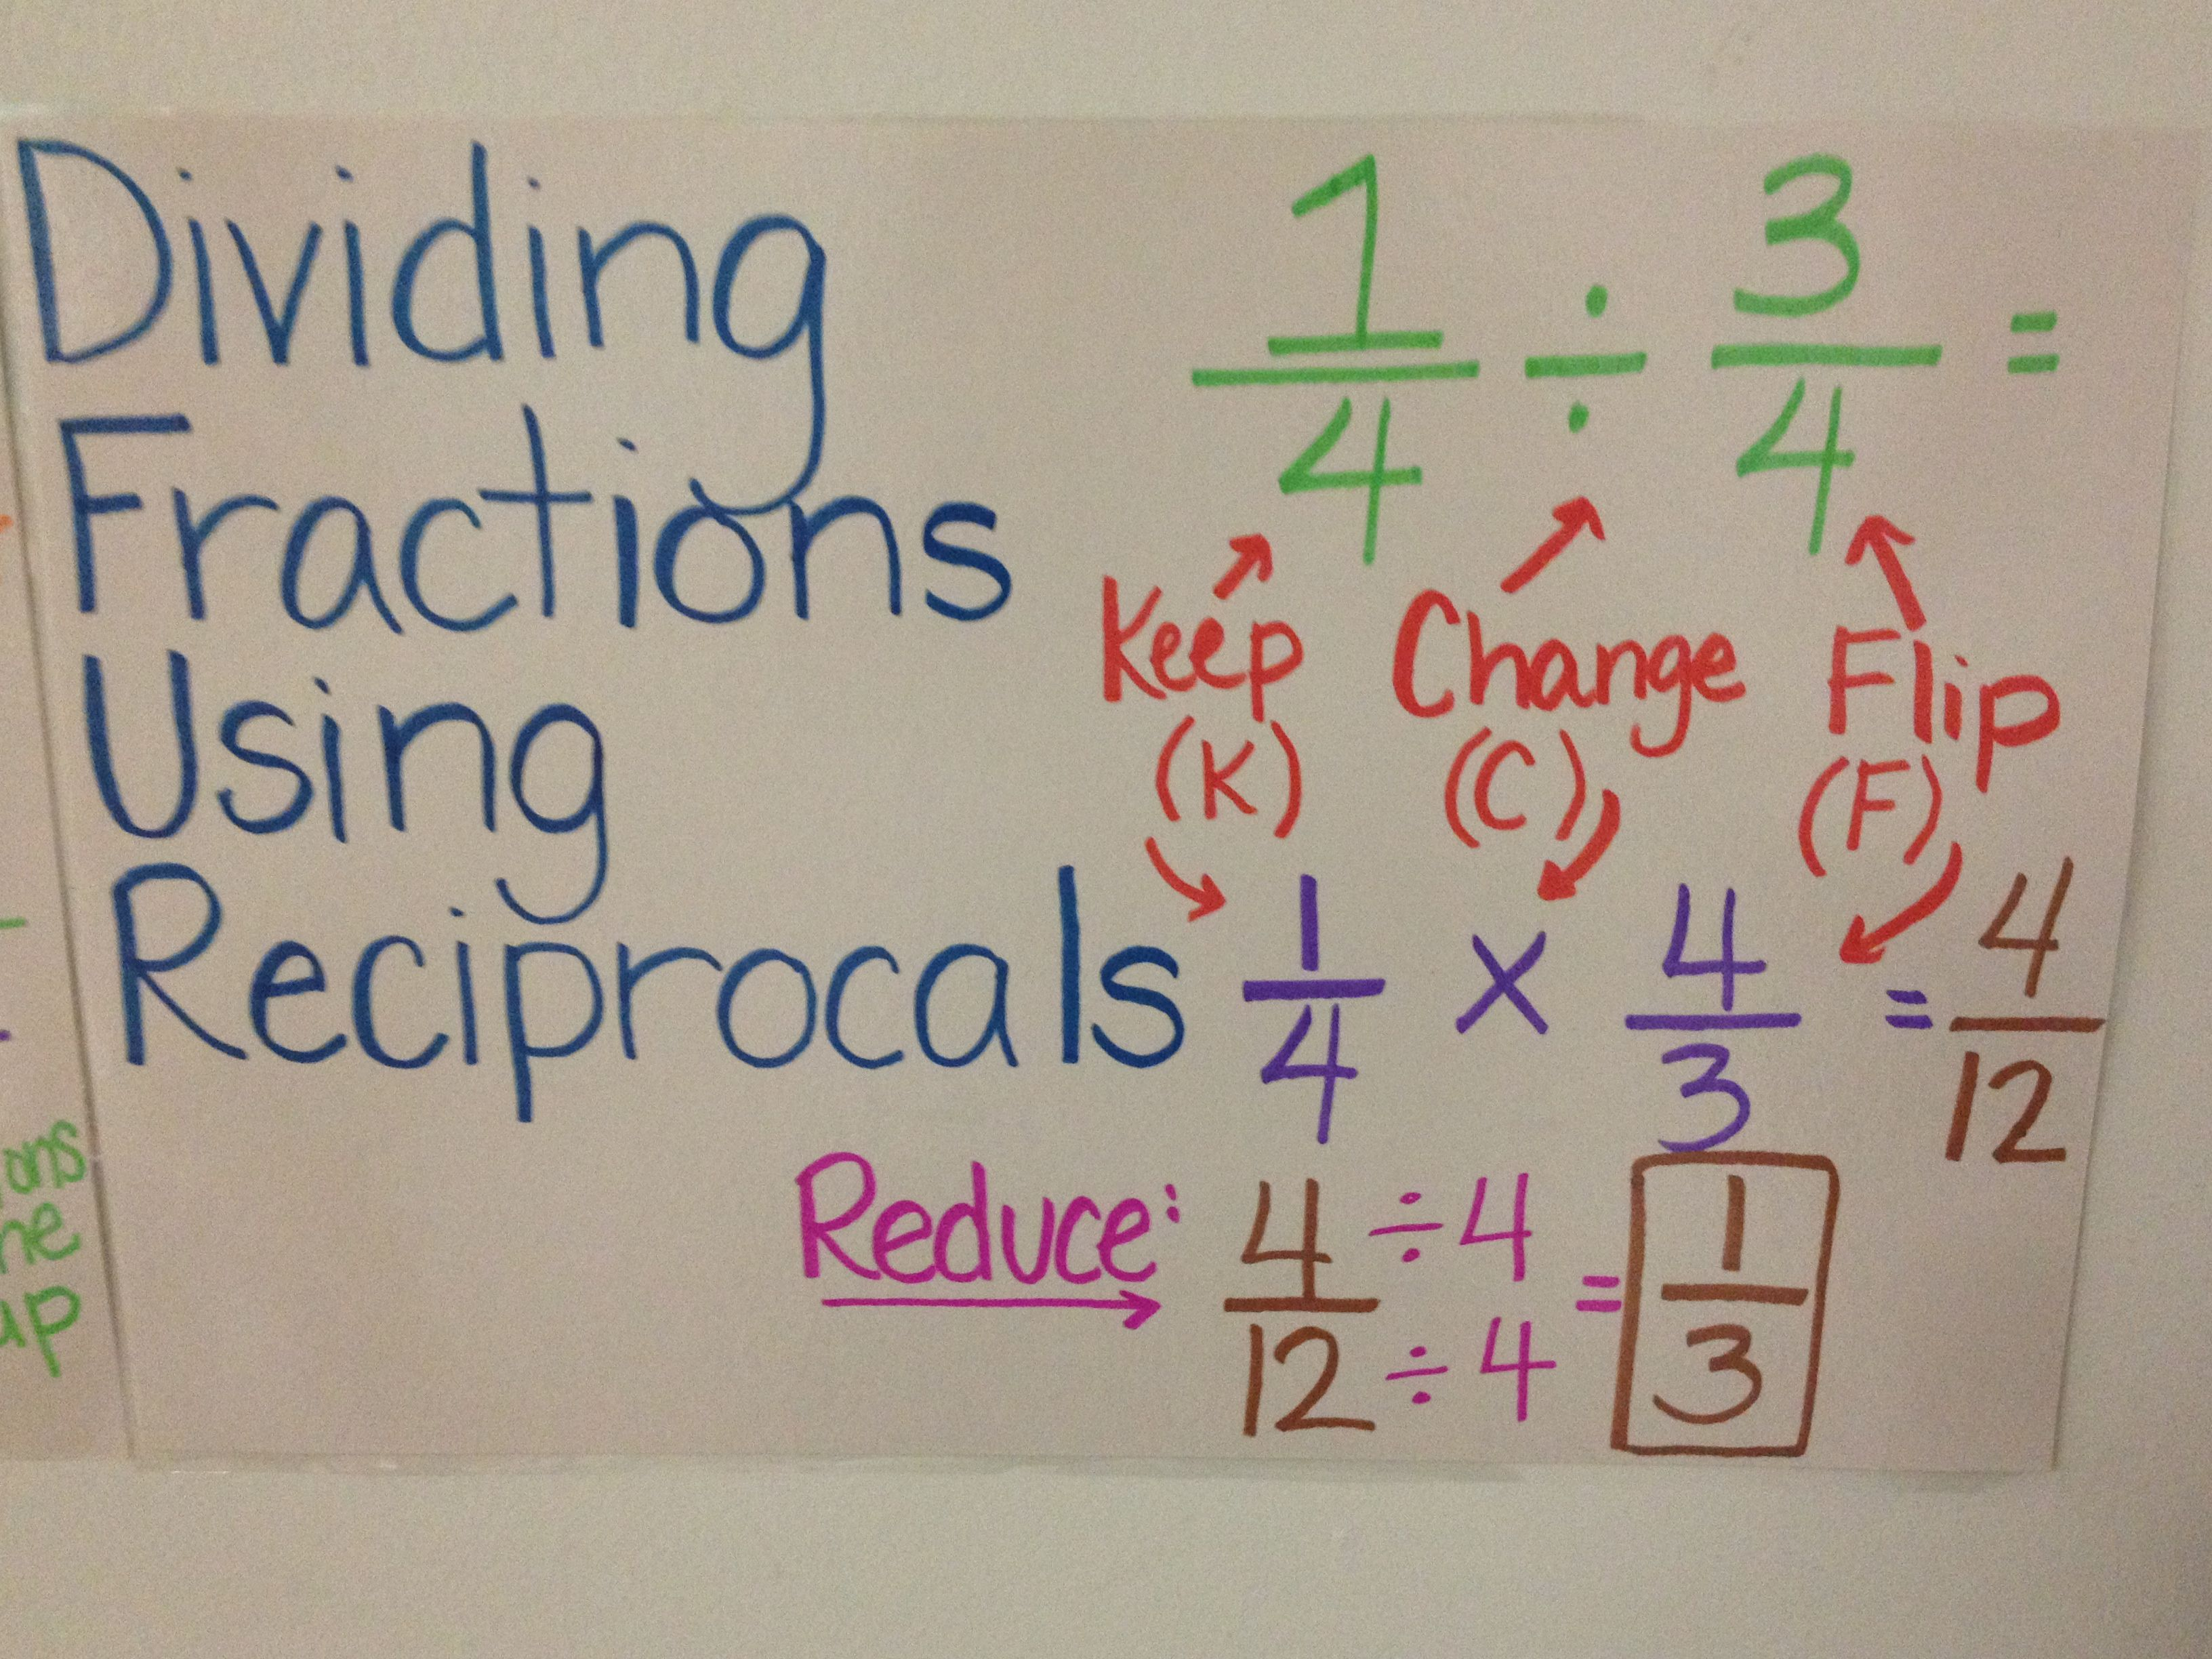 Dividing Fractions Using Reciprocals